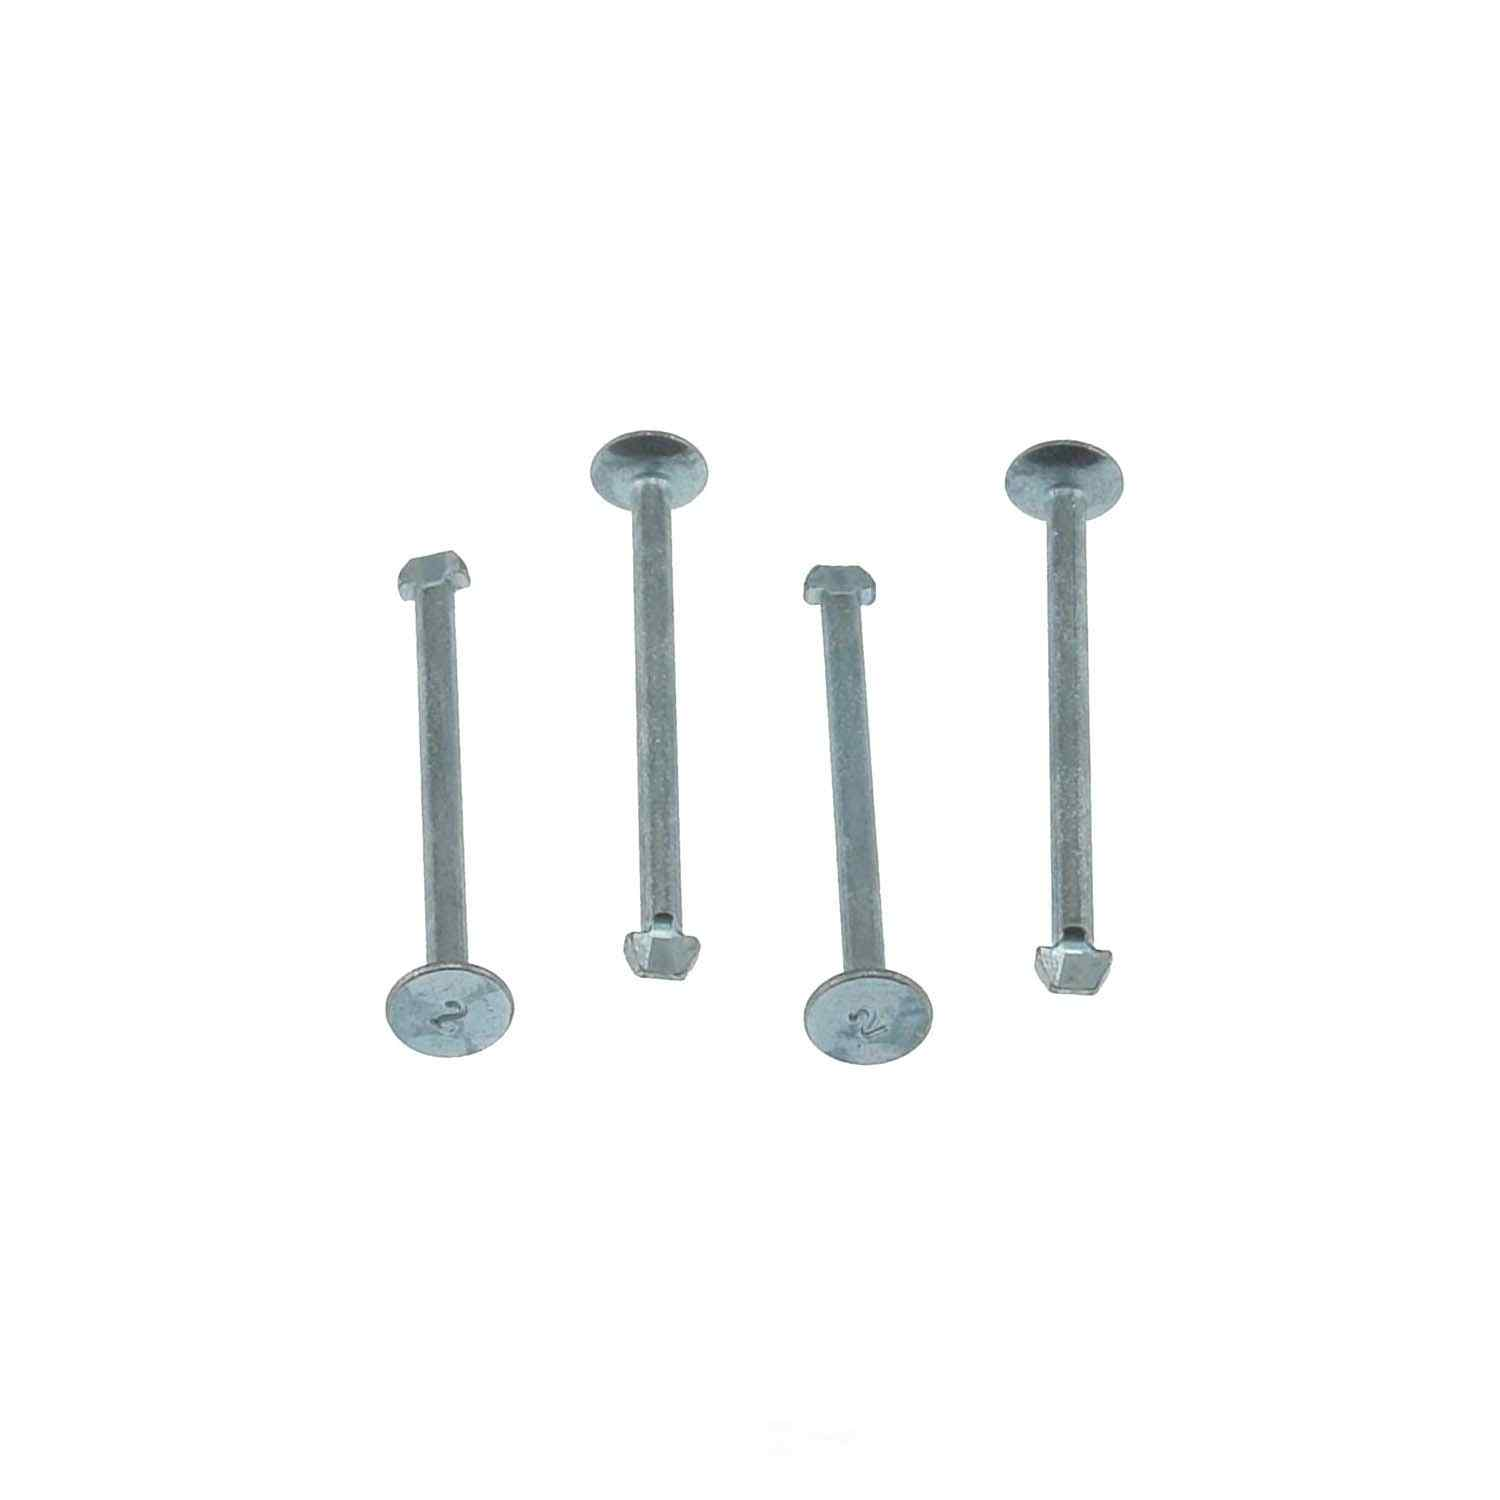 CARLSON QUALITY BRAKE PARTS - Brake Spring Hold Down Pin - CRL H1105-2